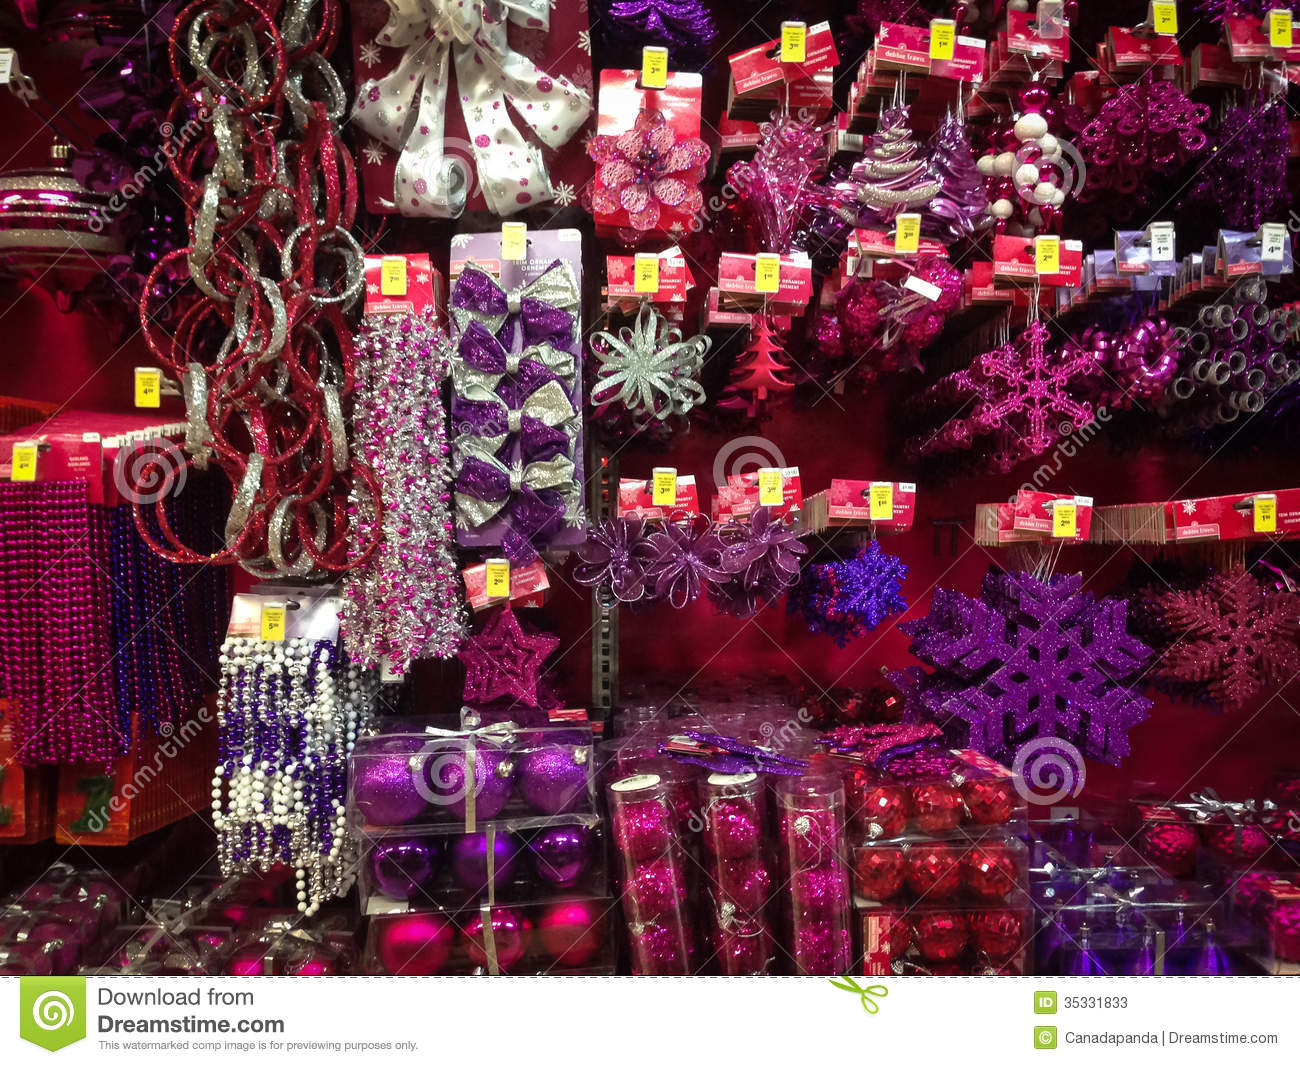 download christmas ornaments for sale editorial stock photo image of scene canada 35331833